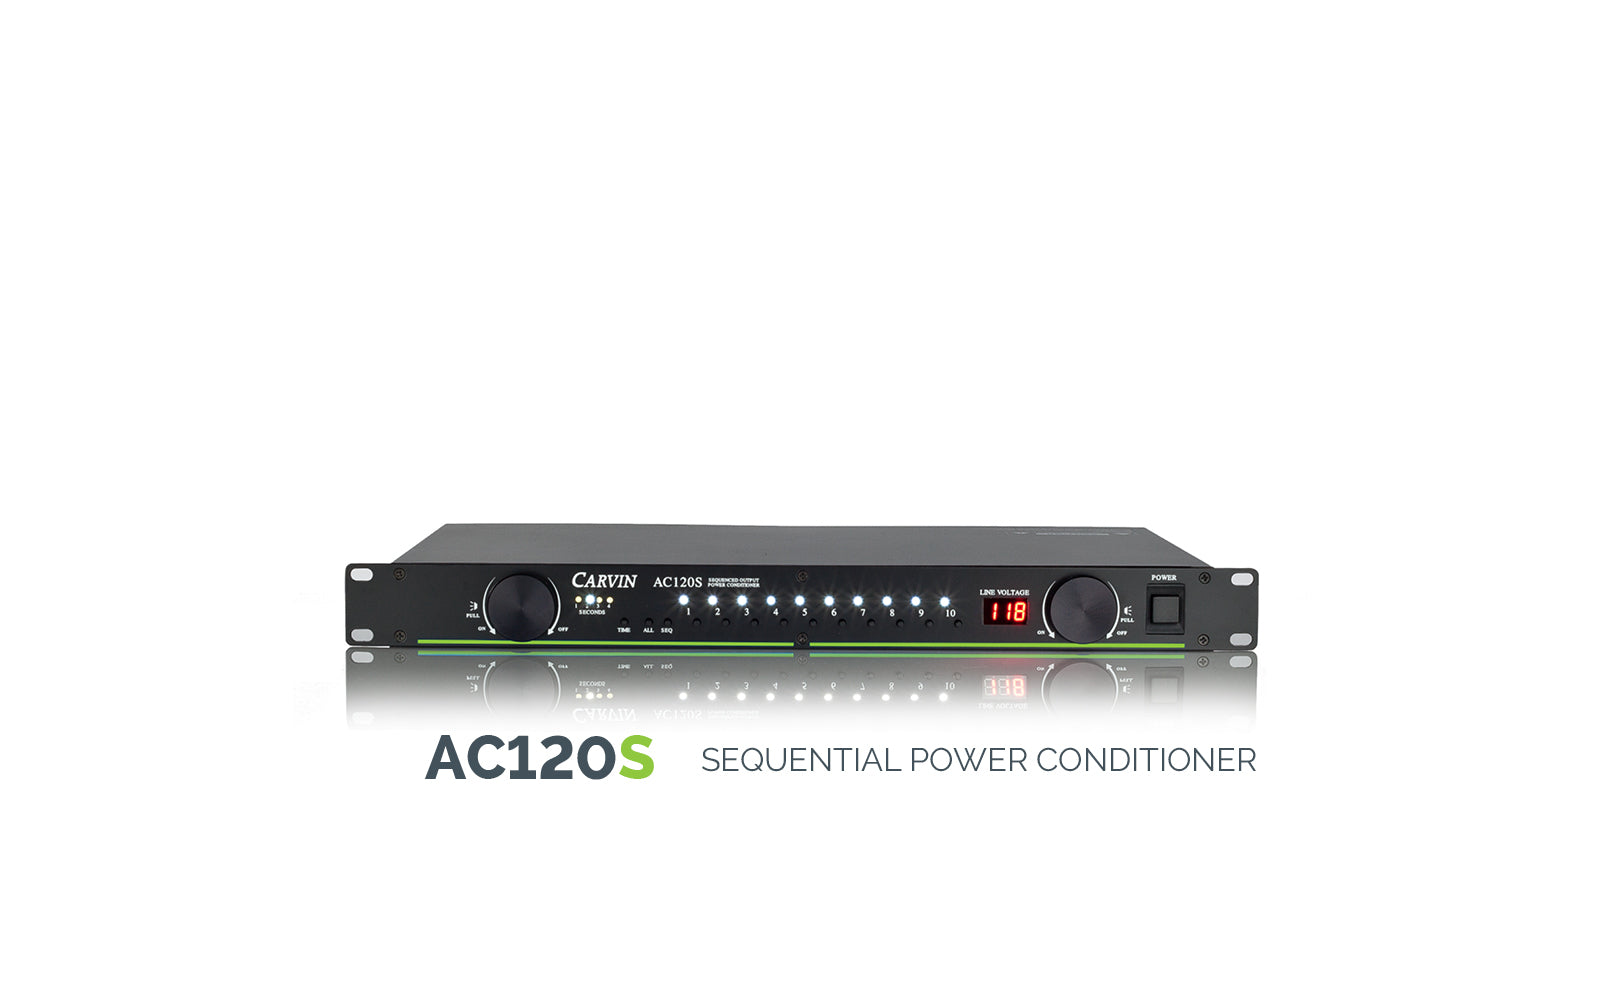 Carvin AC120S Sequential Power Conditioner